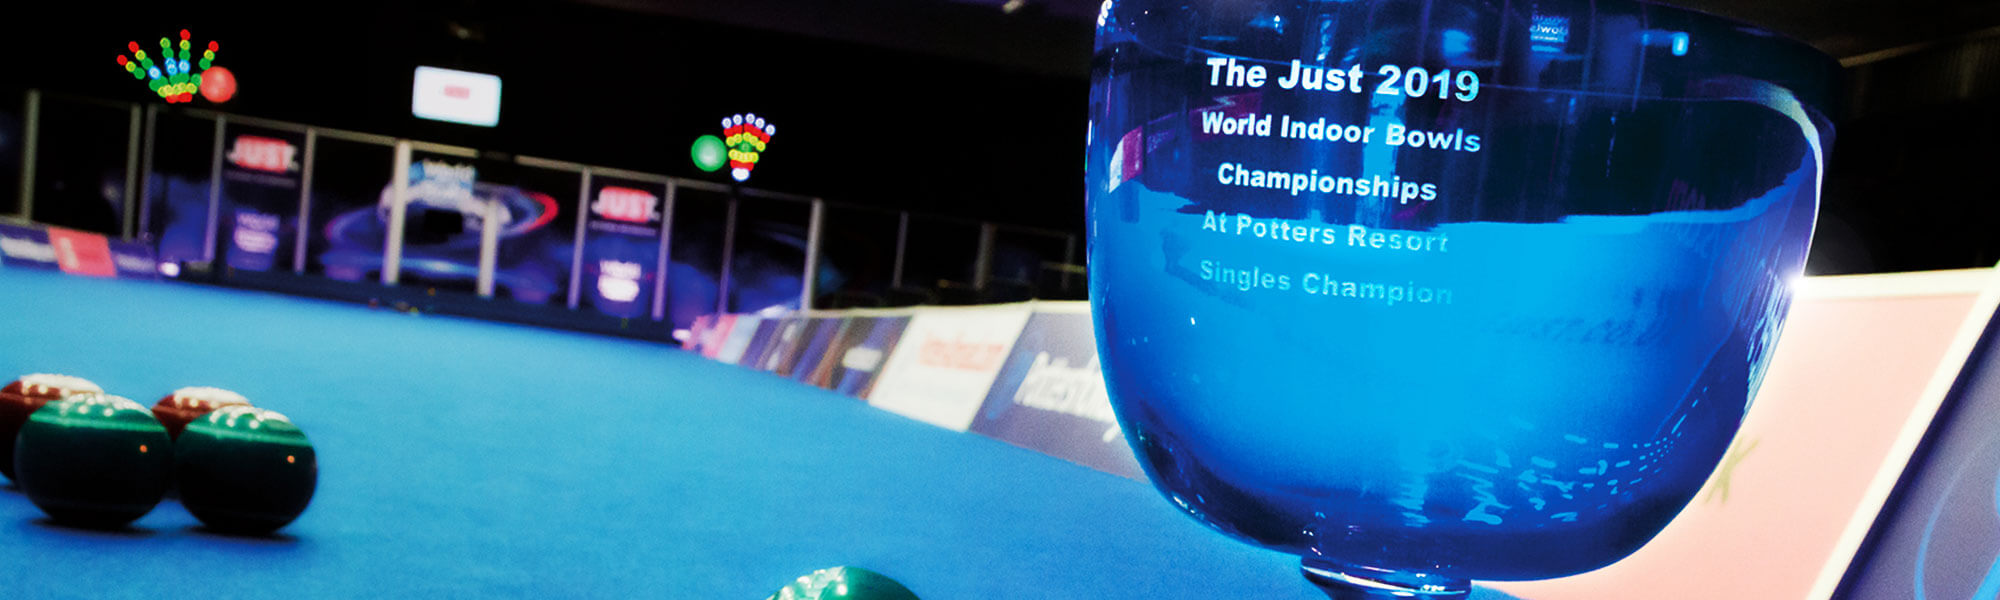 Just 2019 World Indoor Bowls Championships